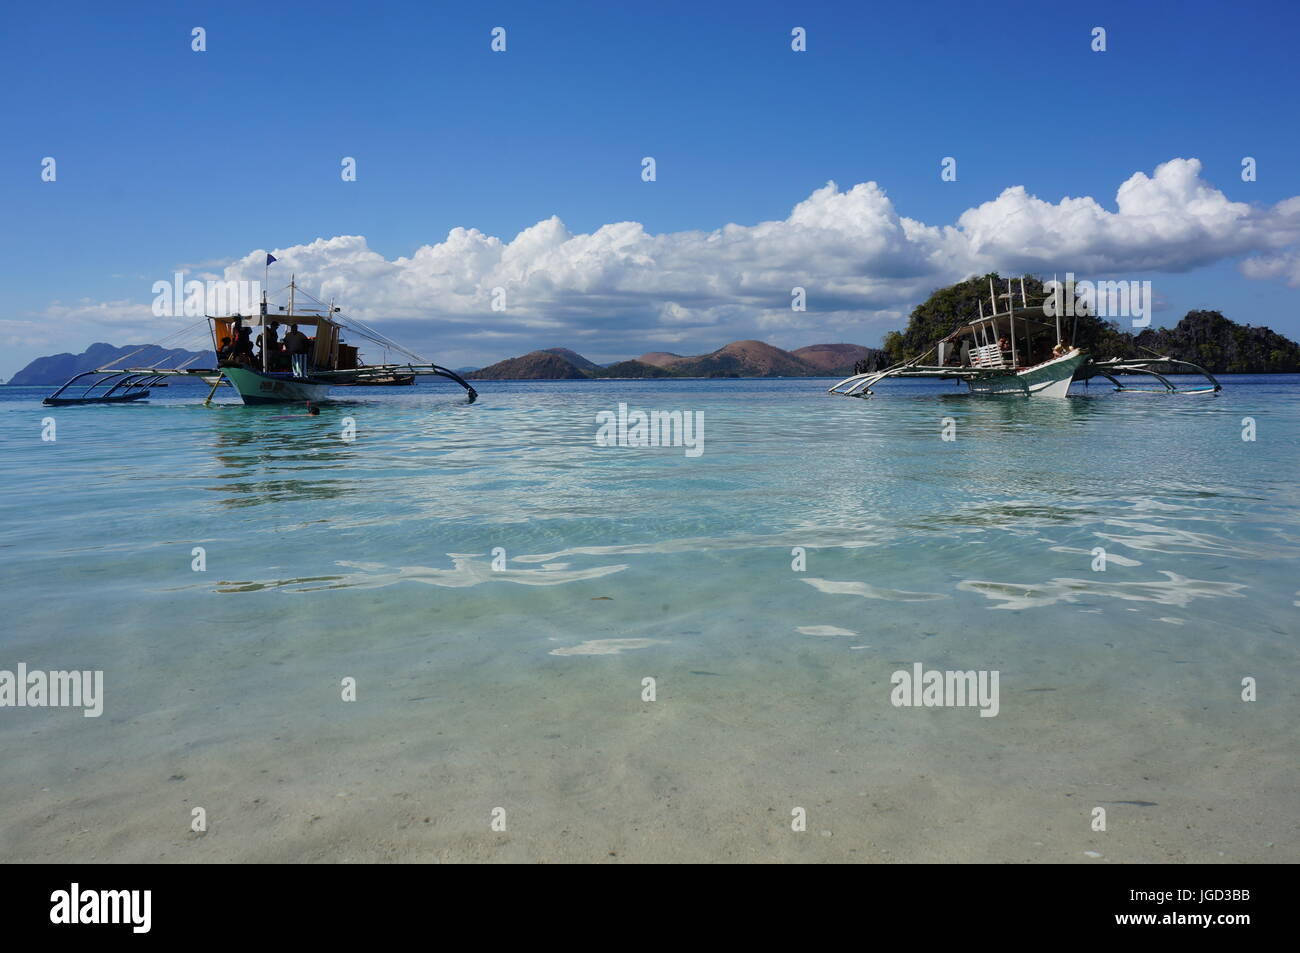 Fishing boats converted for tourists.  Low shot sand, blue sea, boats, hill range / cliffs, bright blue sky, white Stock Photo